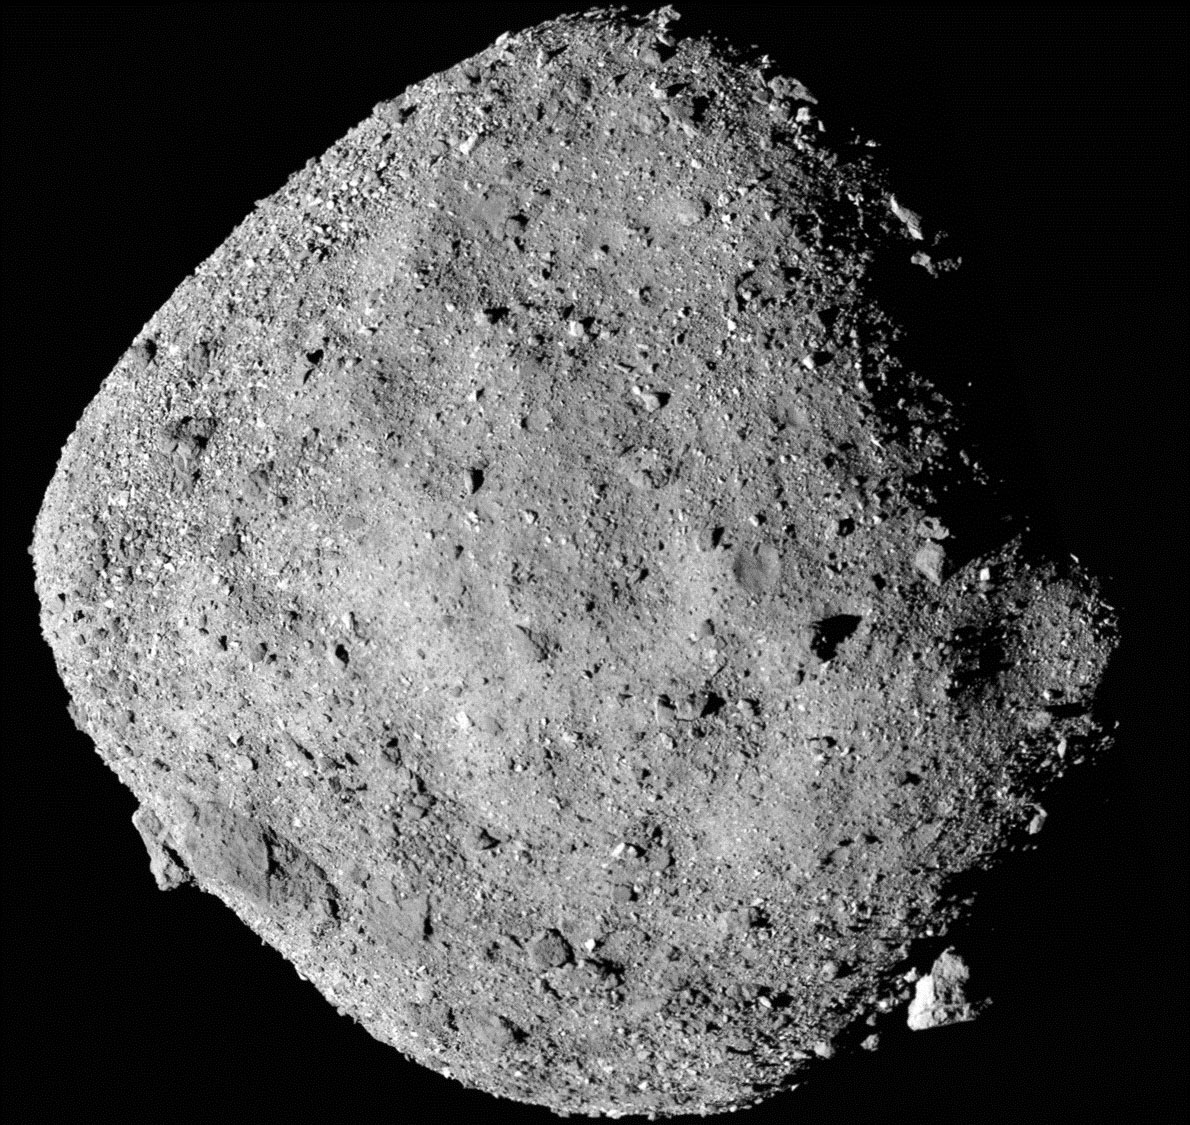 REx Mission Discovers Water in Clay Deposits on Asteroid